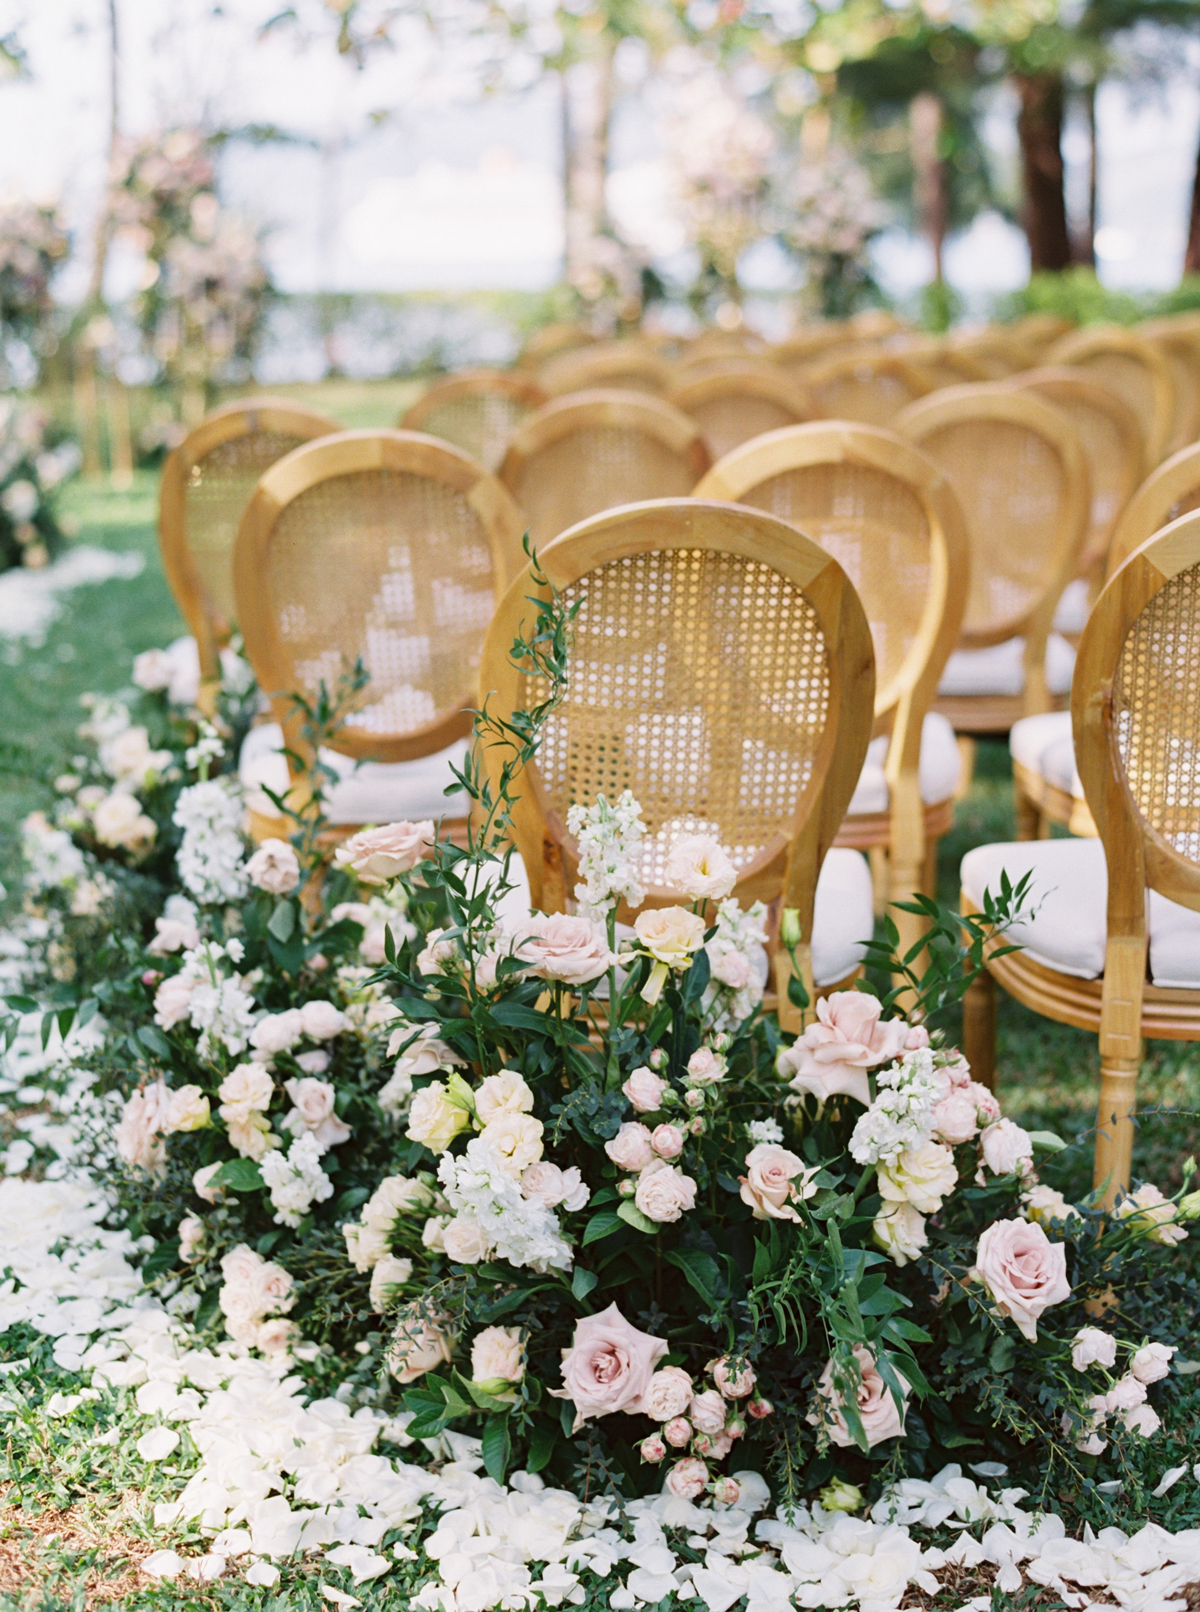 roses and greenery lining wedding aisle